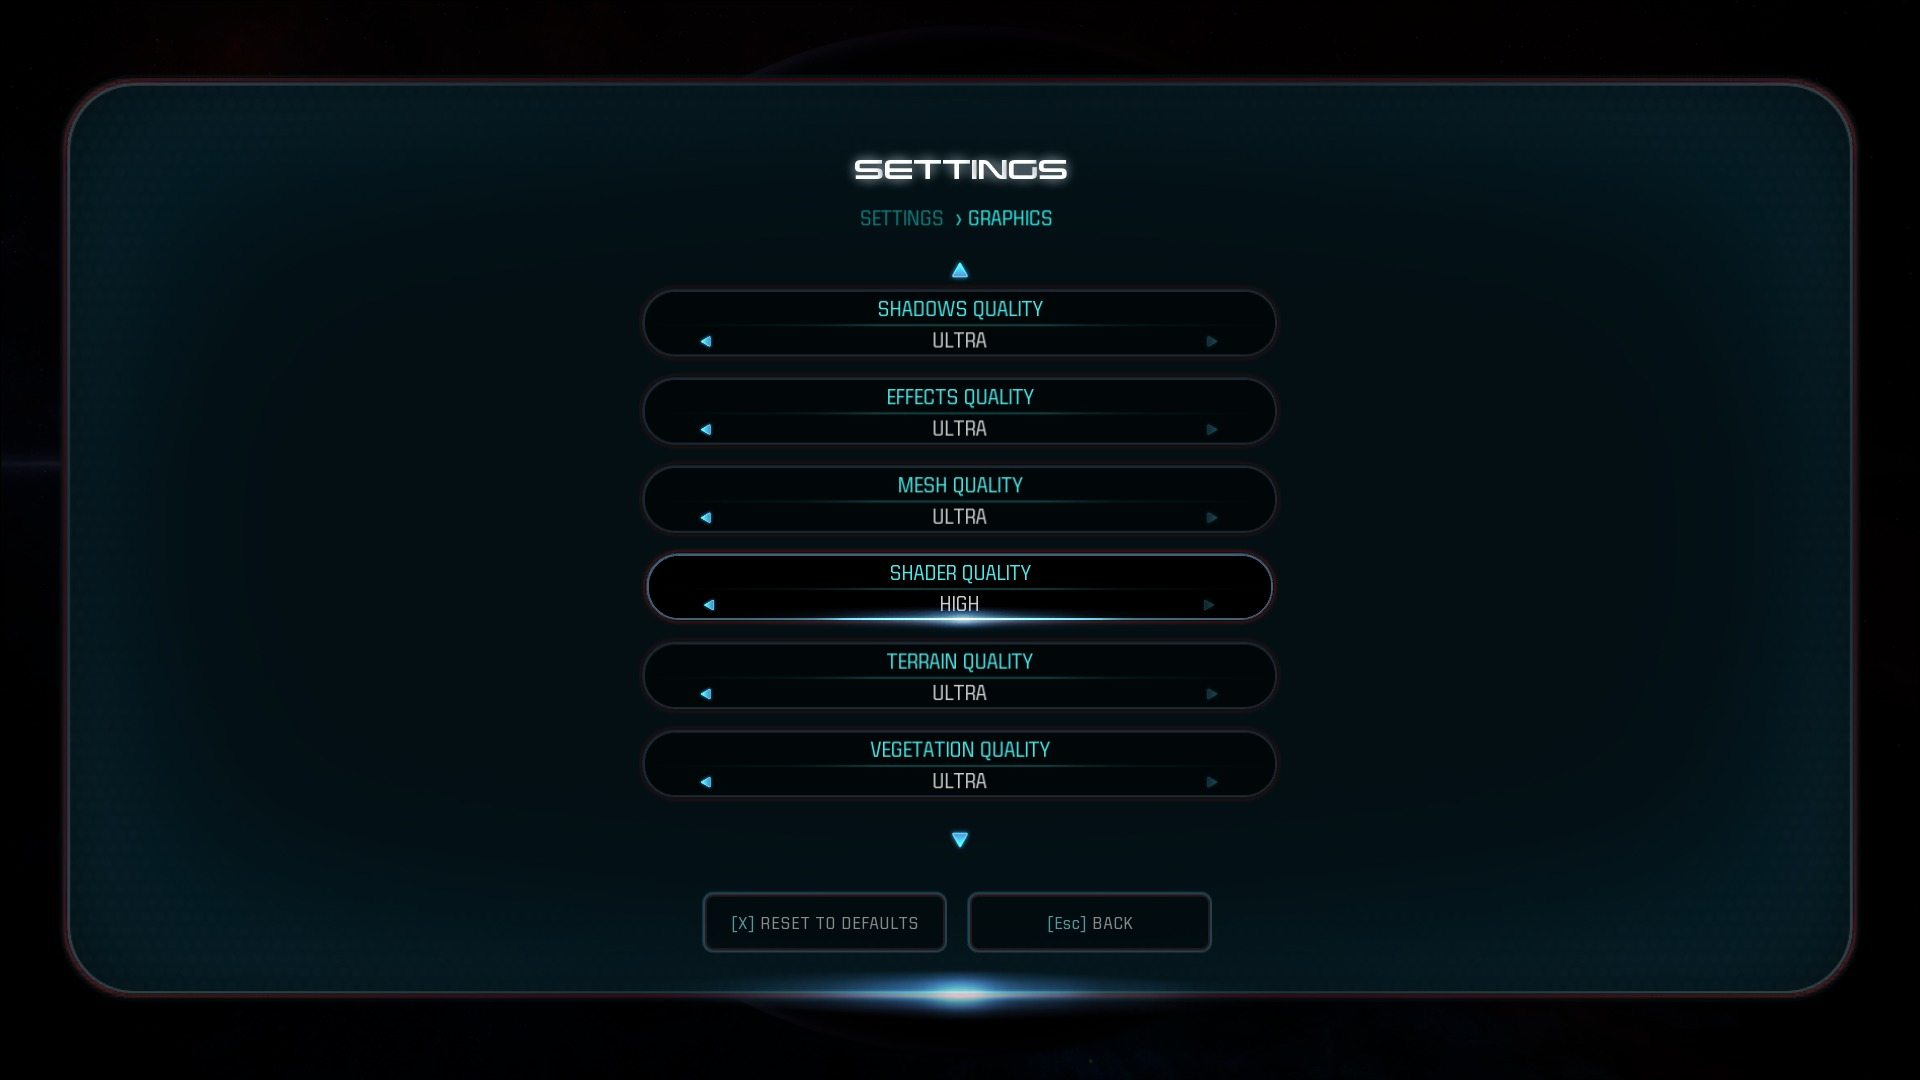 geforce reveals pc graphic settings for mass effect. Black Bedroom Furniture Sets. Home Design Ideas